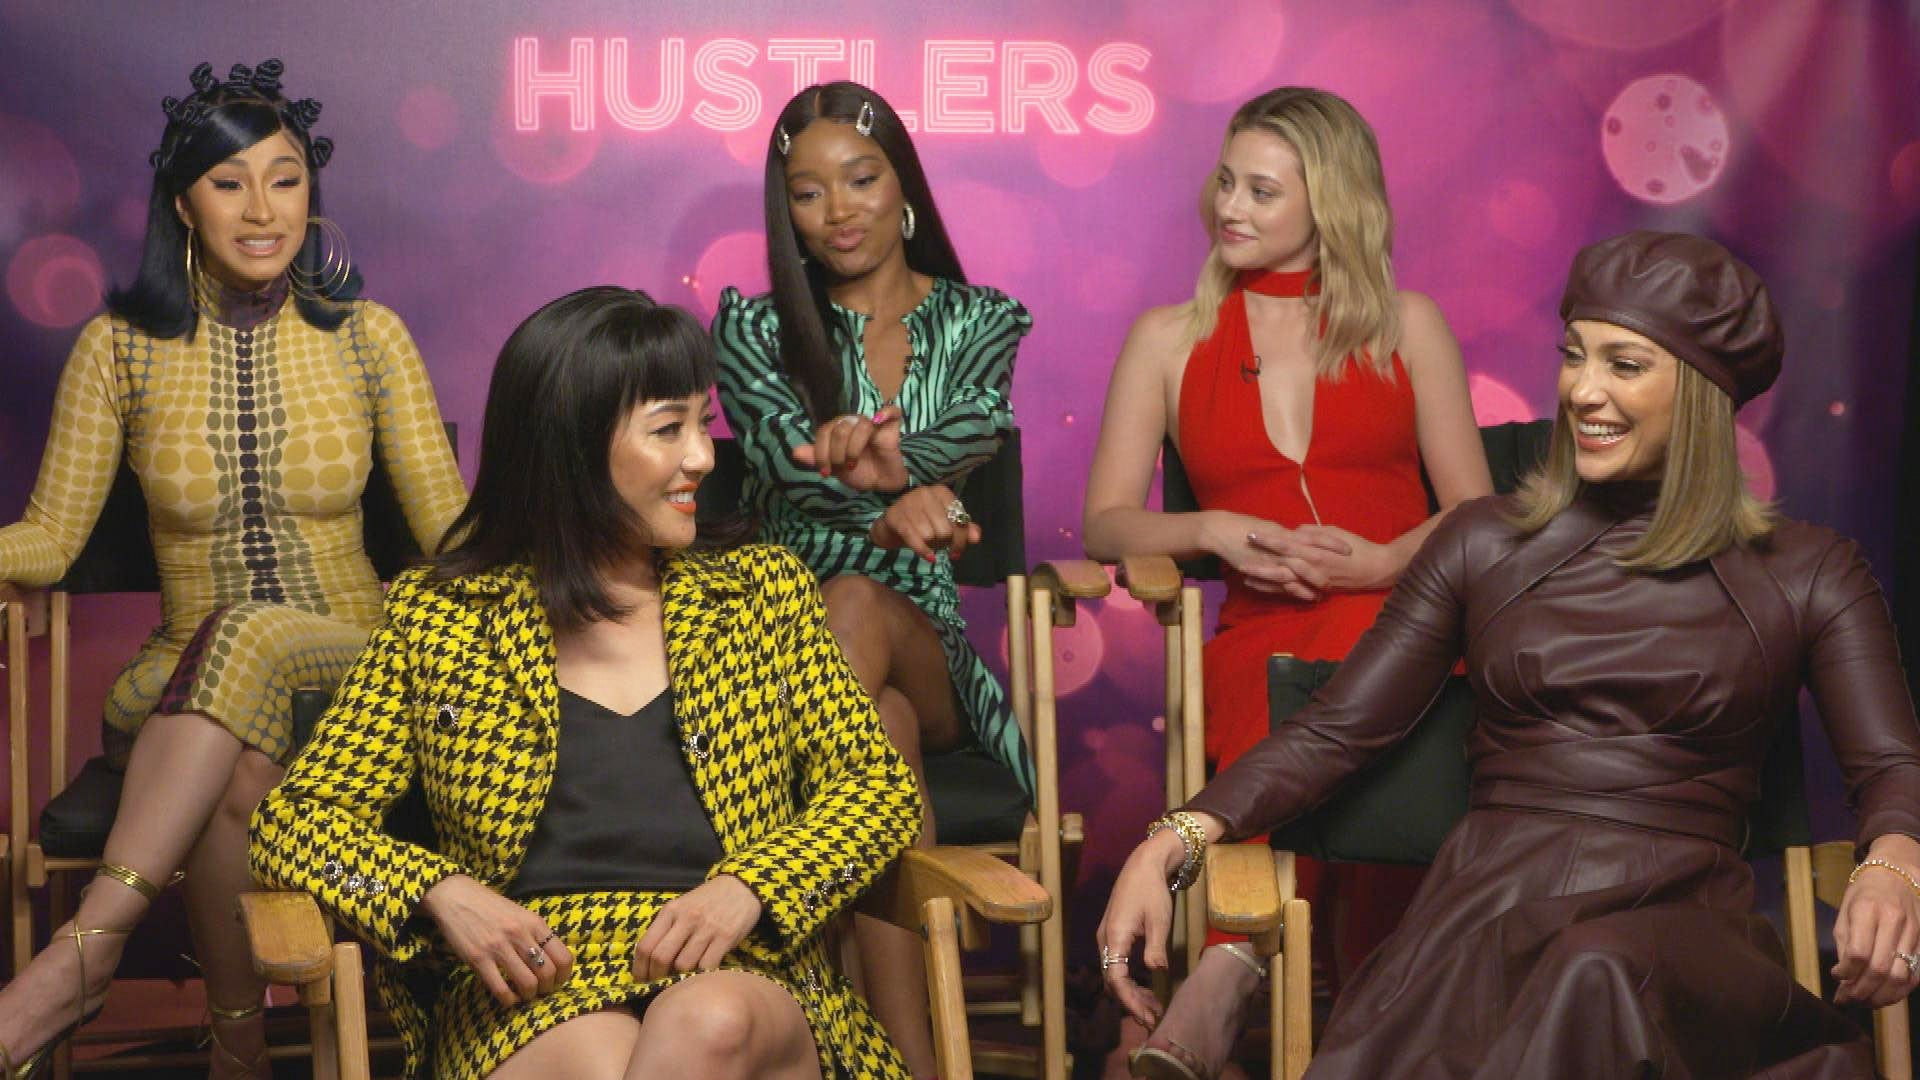 Hustlers Cast Spills On Set Secrets Popping Champagne Butt Grabs And More Exclusive Entertainment Tonight